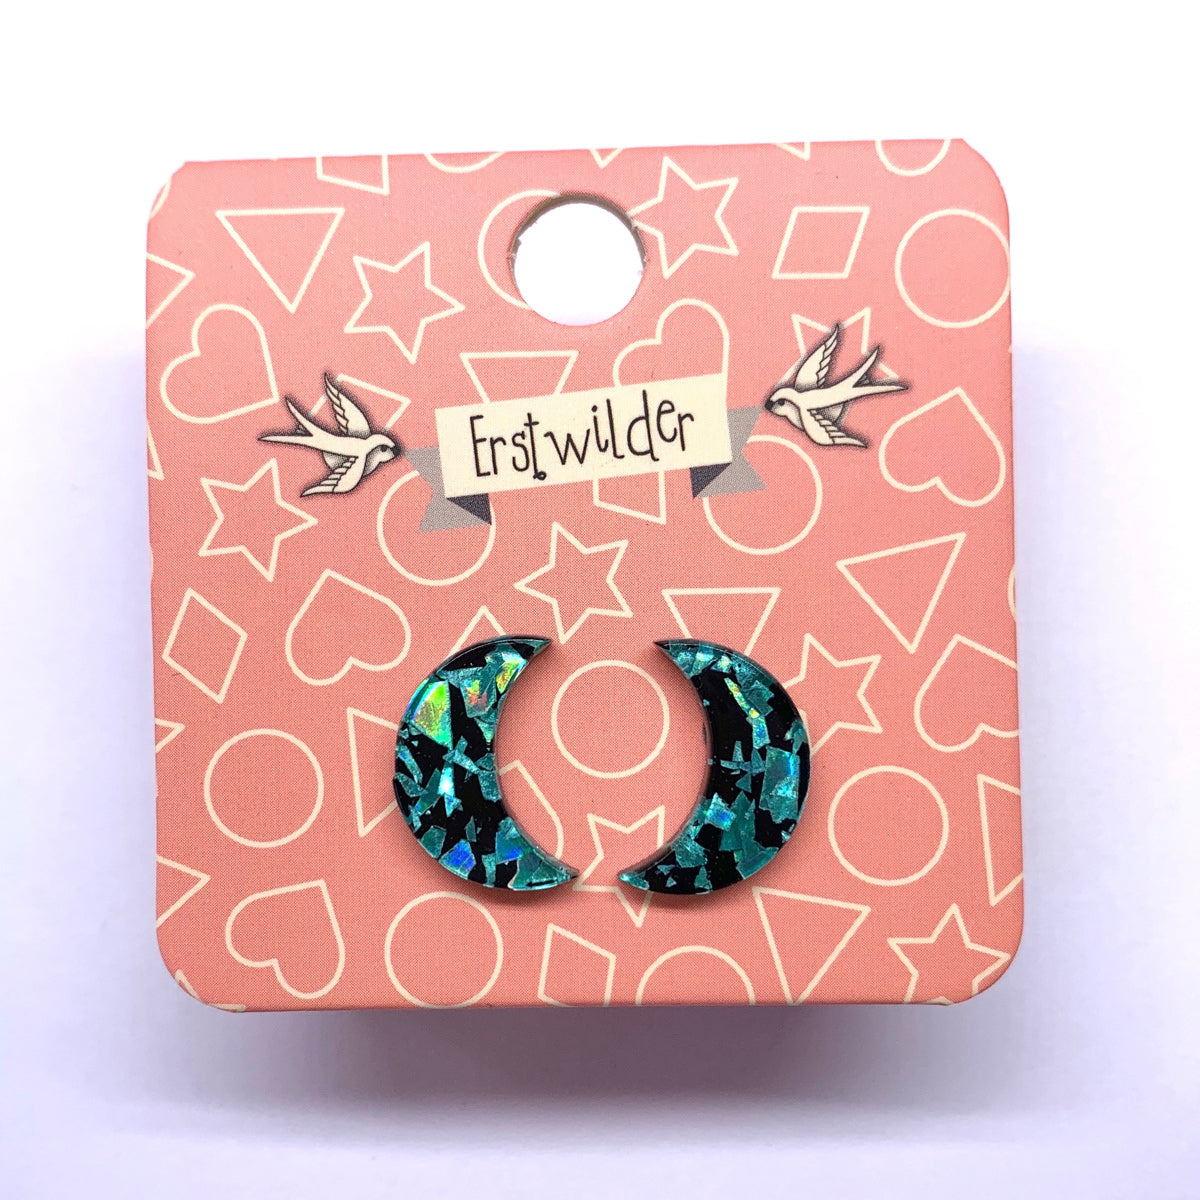 Teal Chunky Glitter Crescent Earrings by Erstwilder